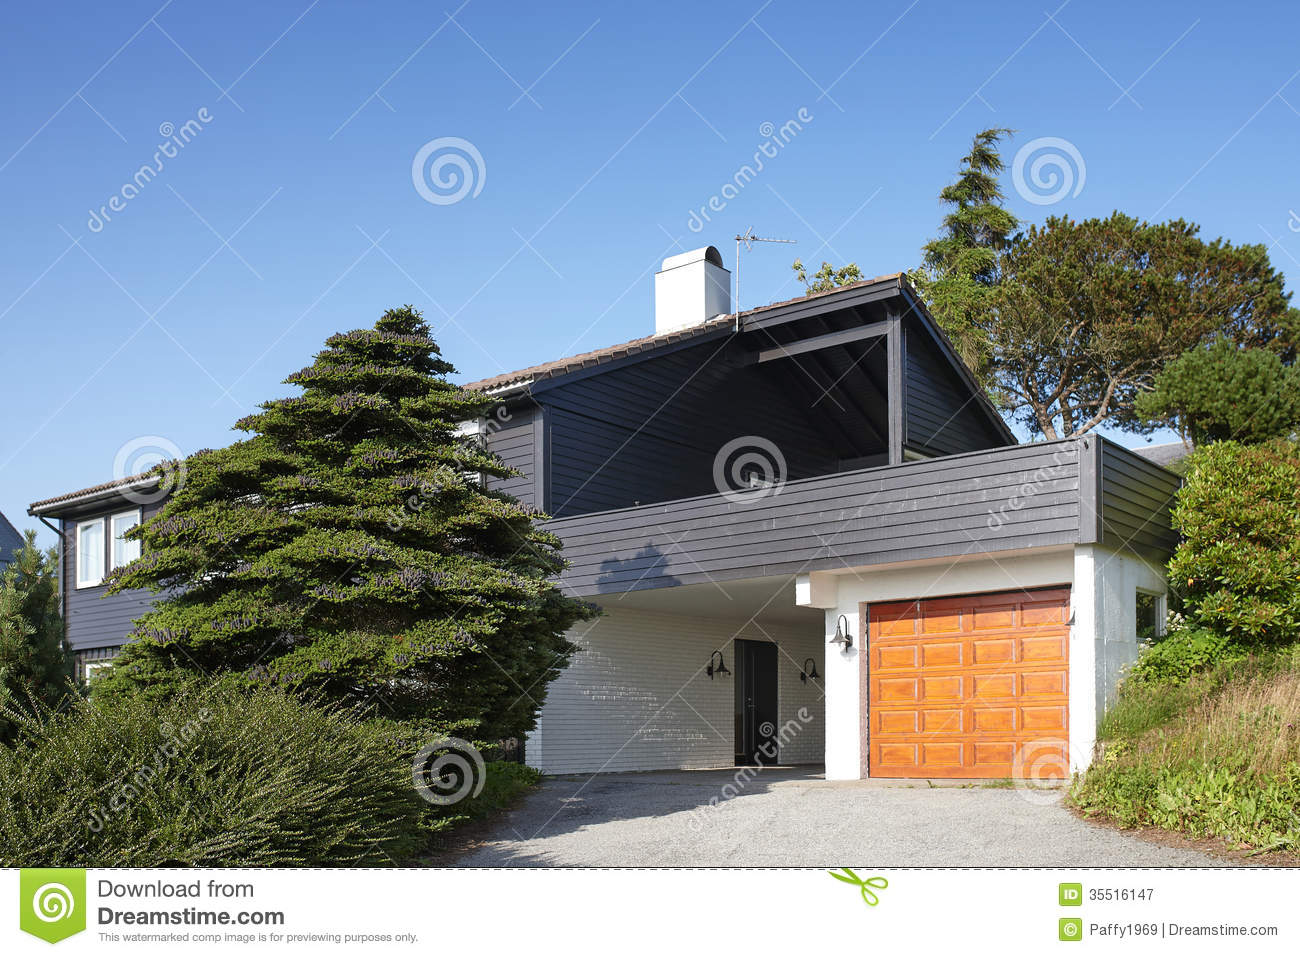 Modern wooden house with garage in norway stock image for House in garage